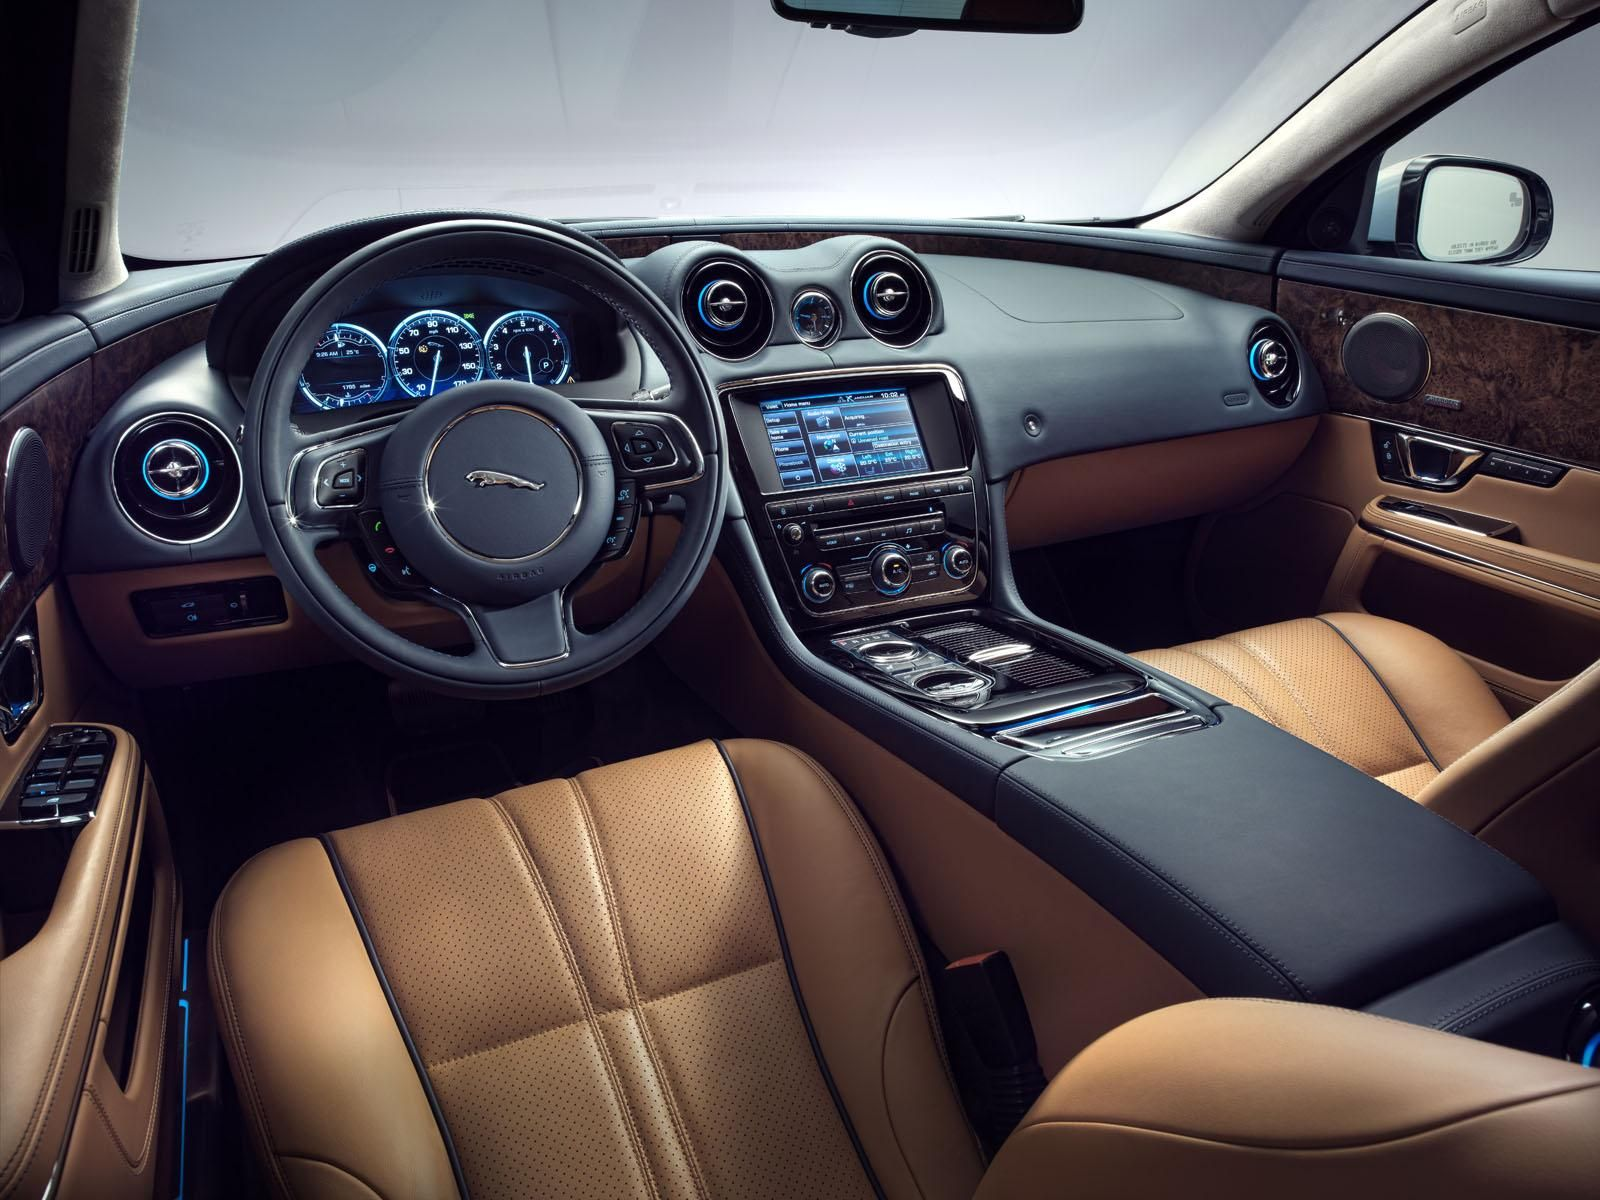 Gallery for jaguar xj interior image